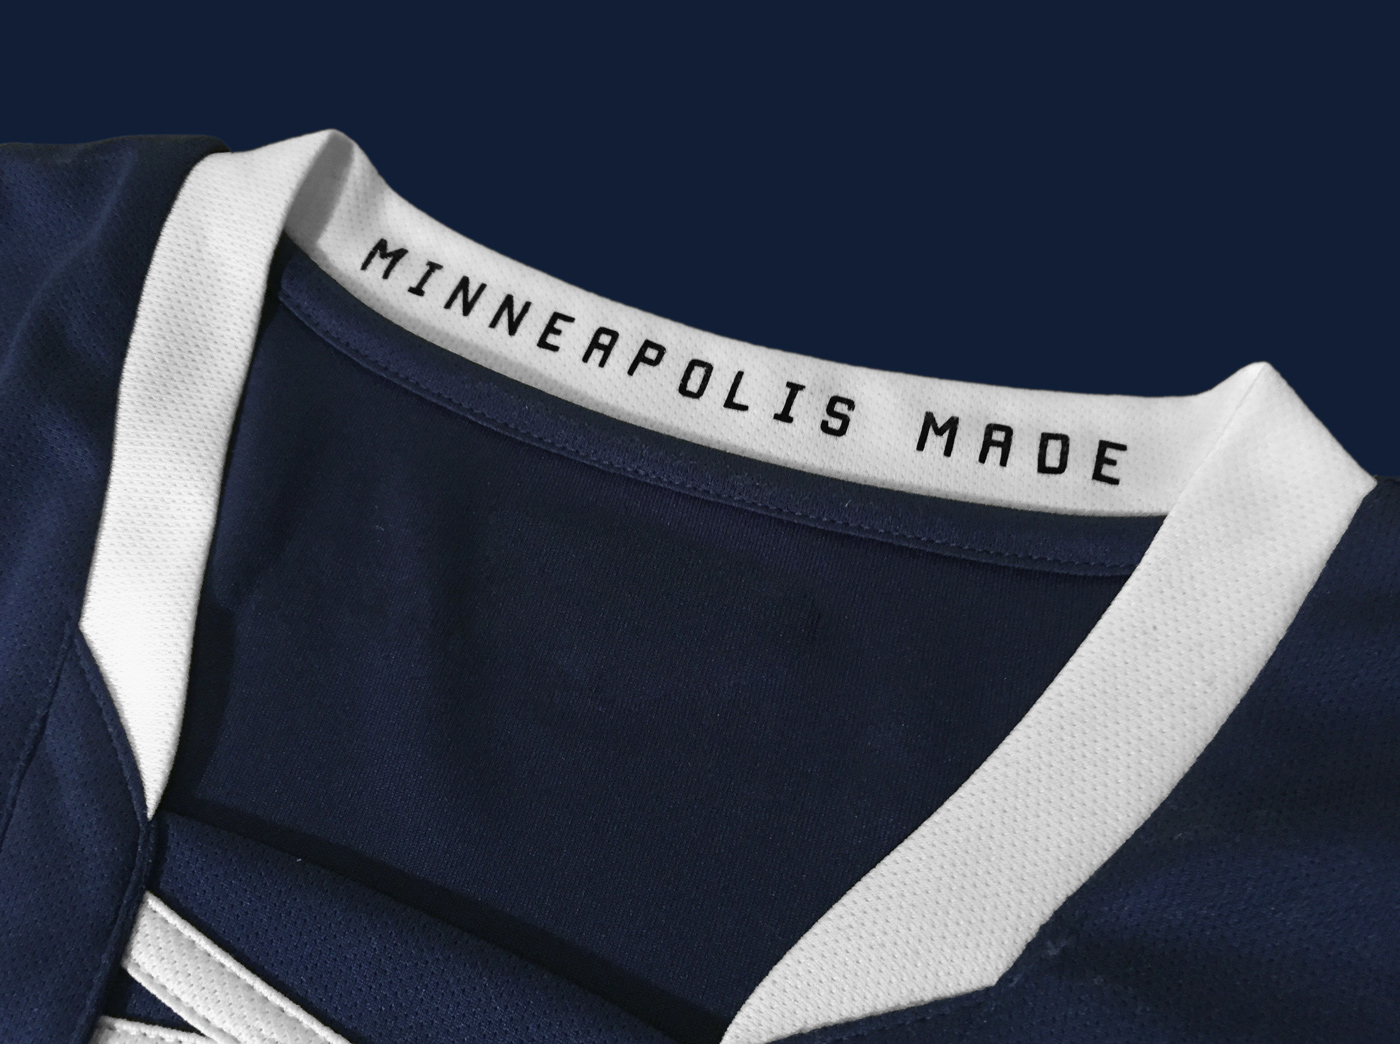 Minneapolis Made, Jersey, Minneapolis City SC, MPLS, City, Soccer Club, Throwback, US Open Cup, Crest, Logo, Badge, City of Lakes, Matthew Wolff, Design, Premier League of America, 2016, Kit